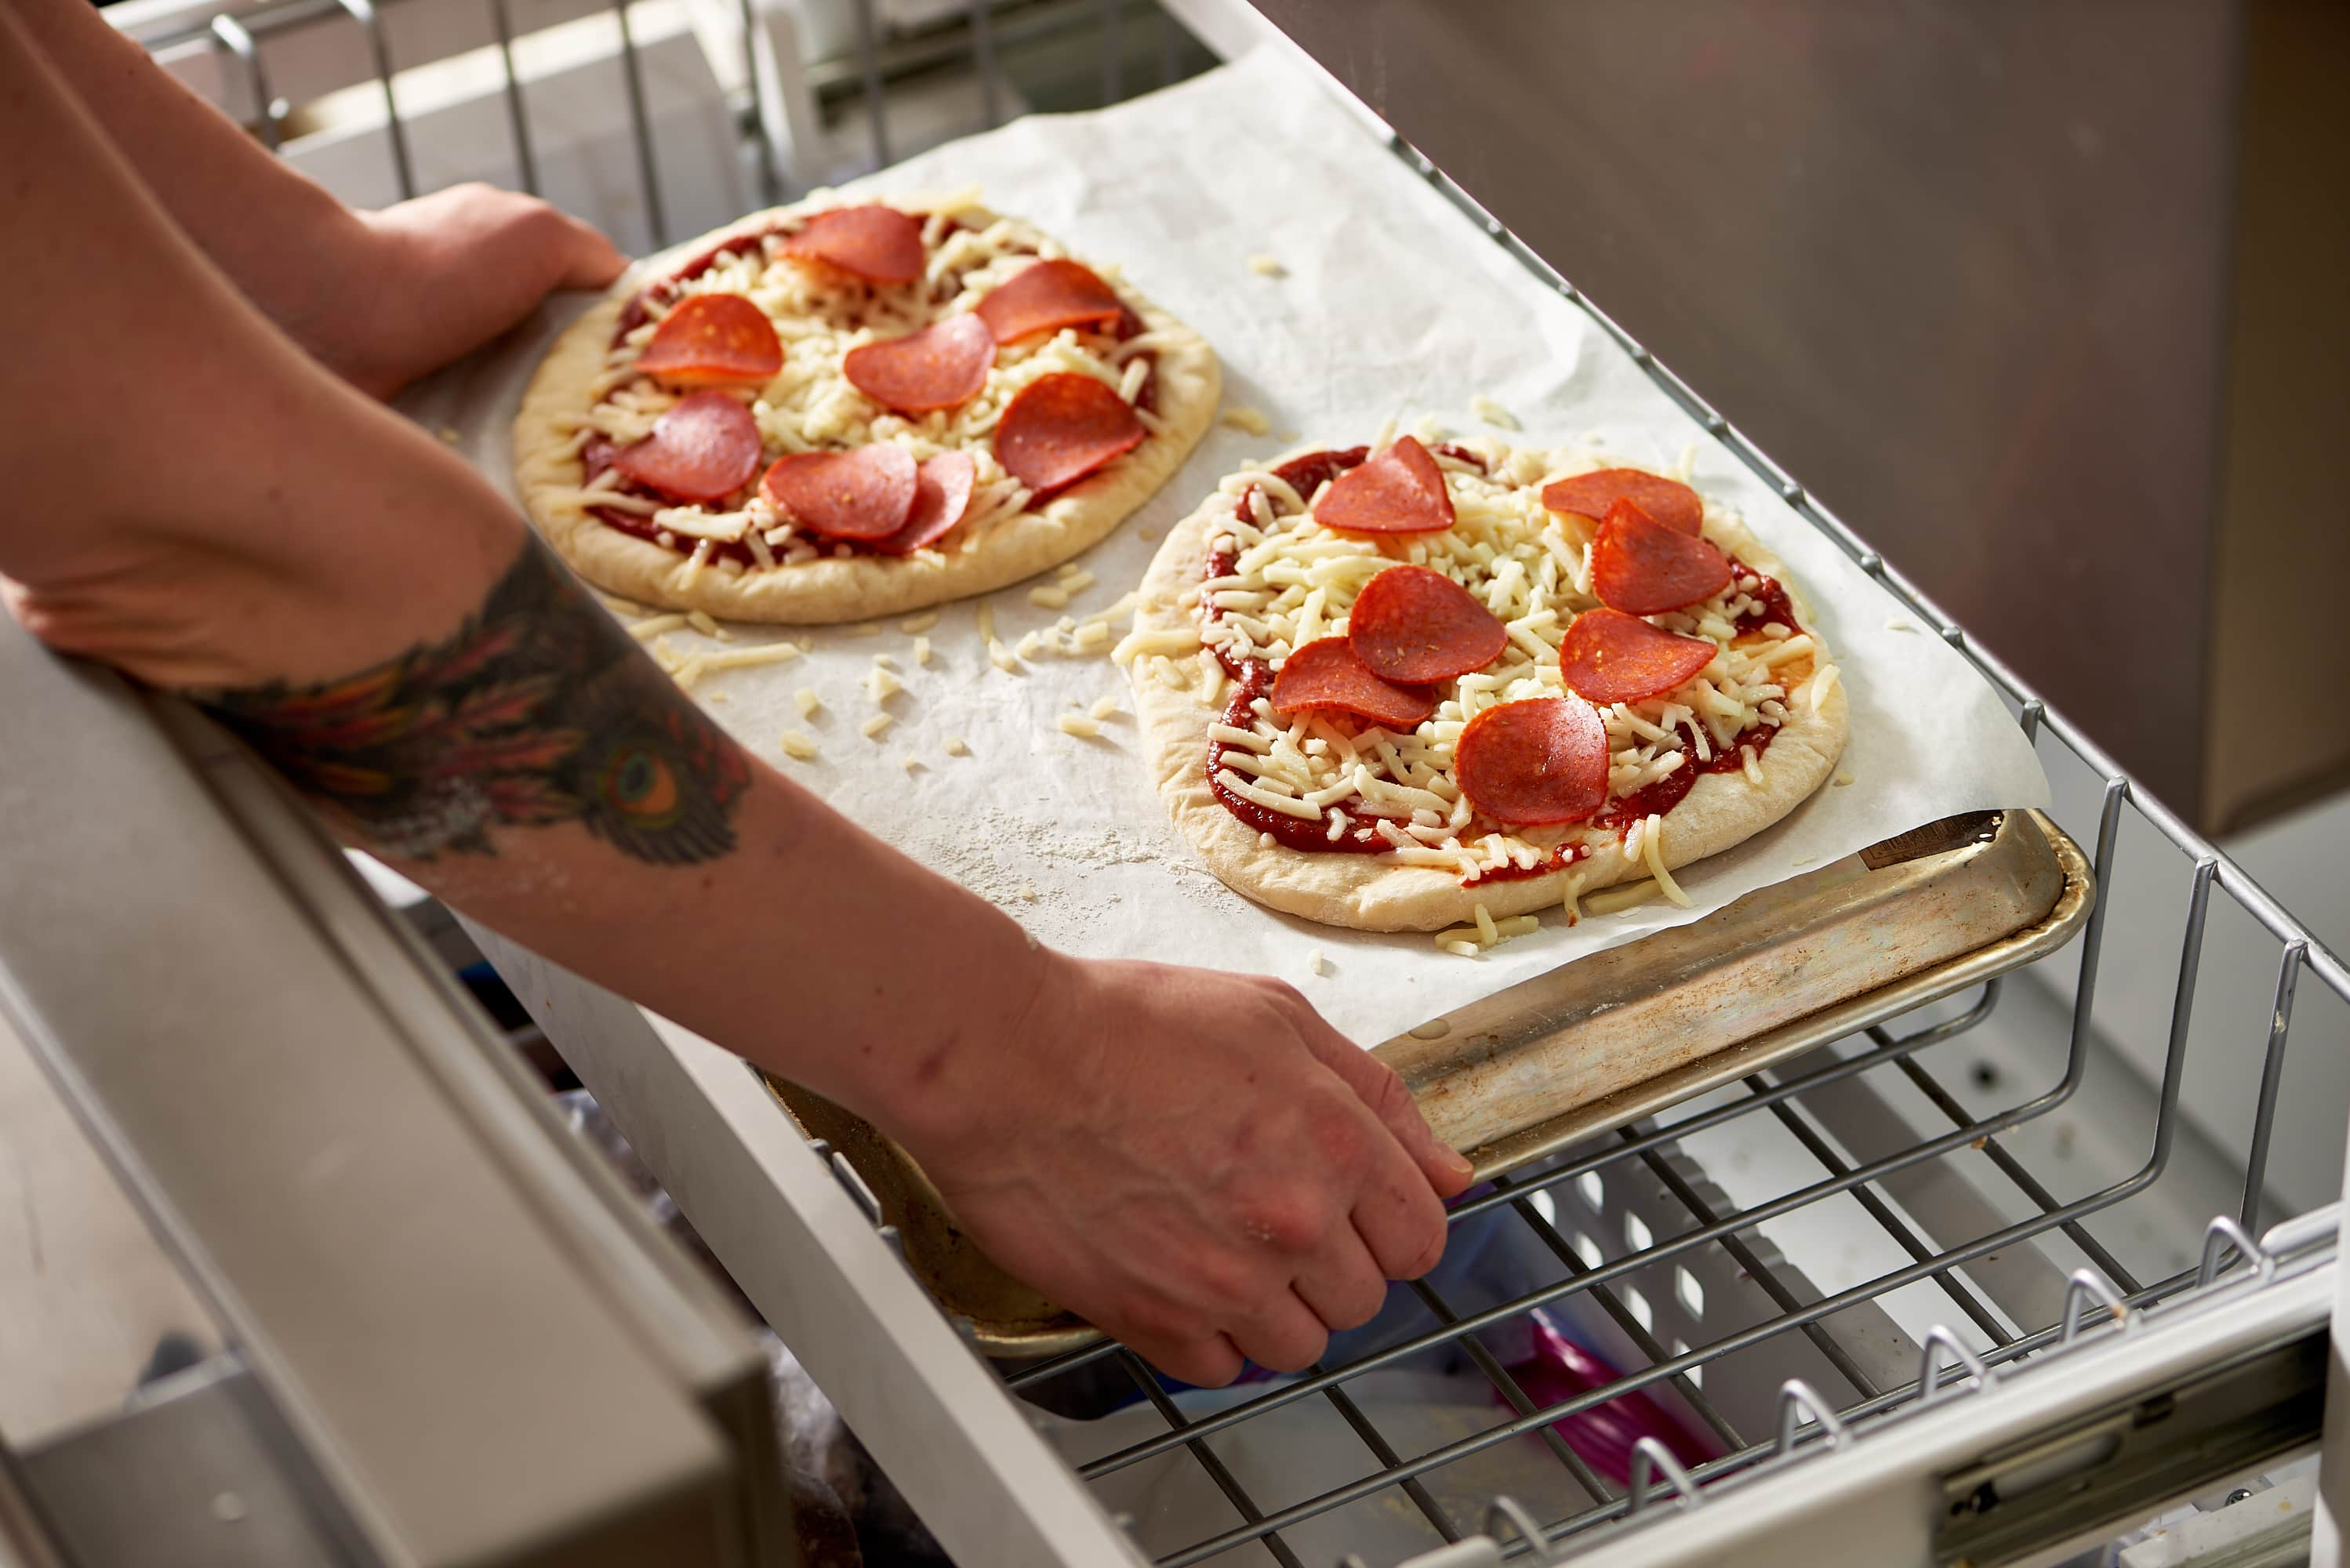 How To Cook A Frozen Pizza In The Microwave